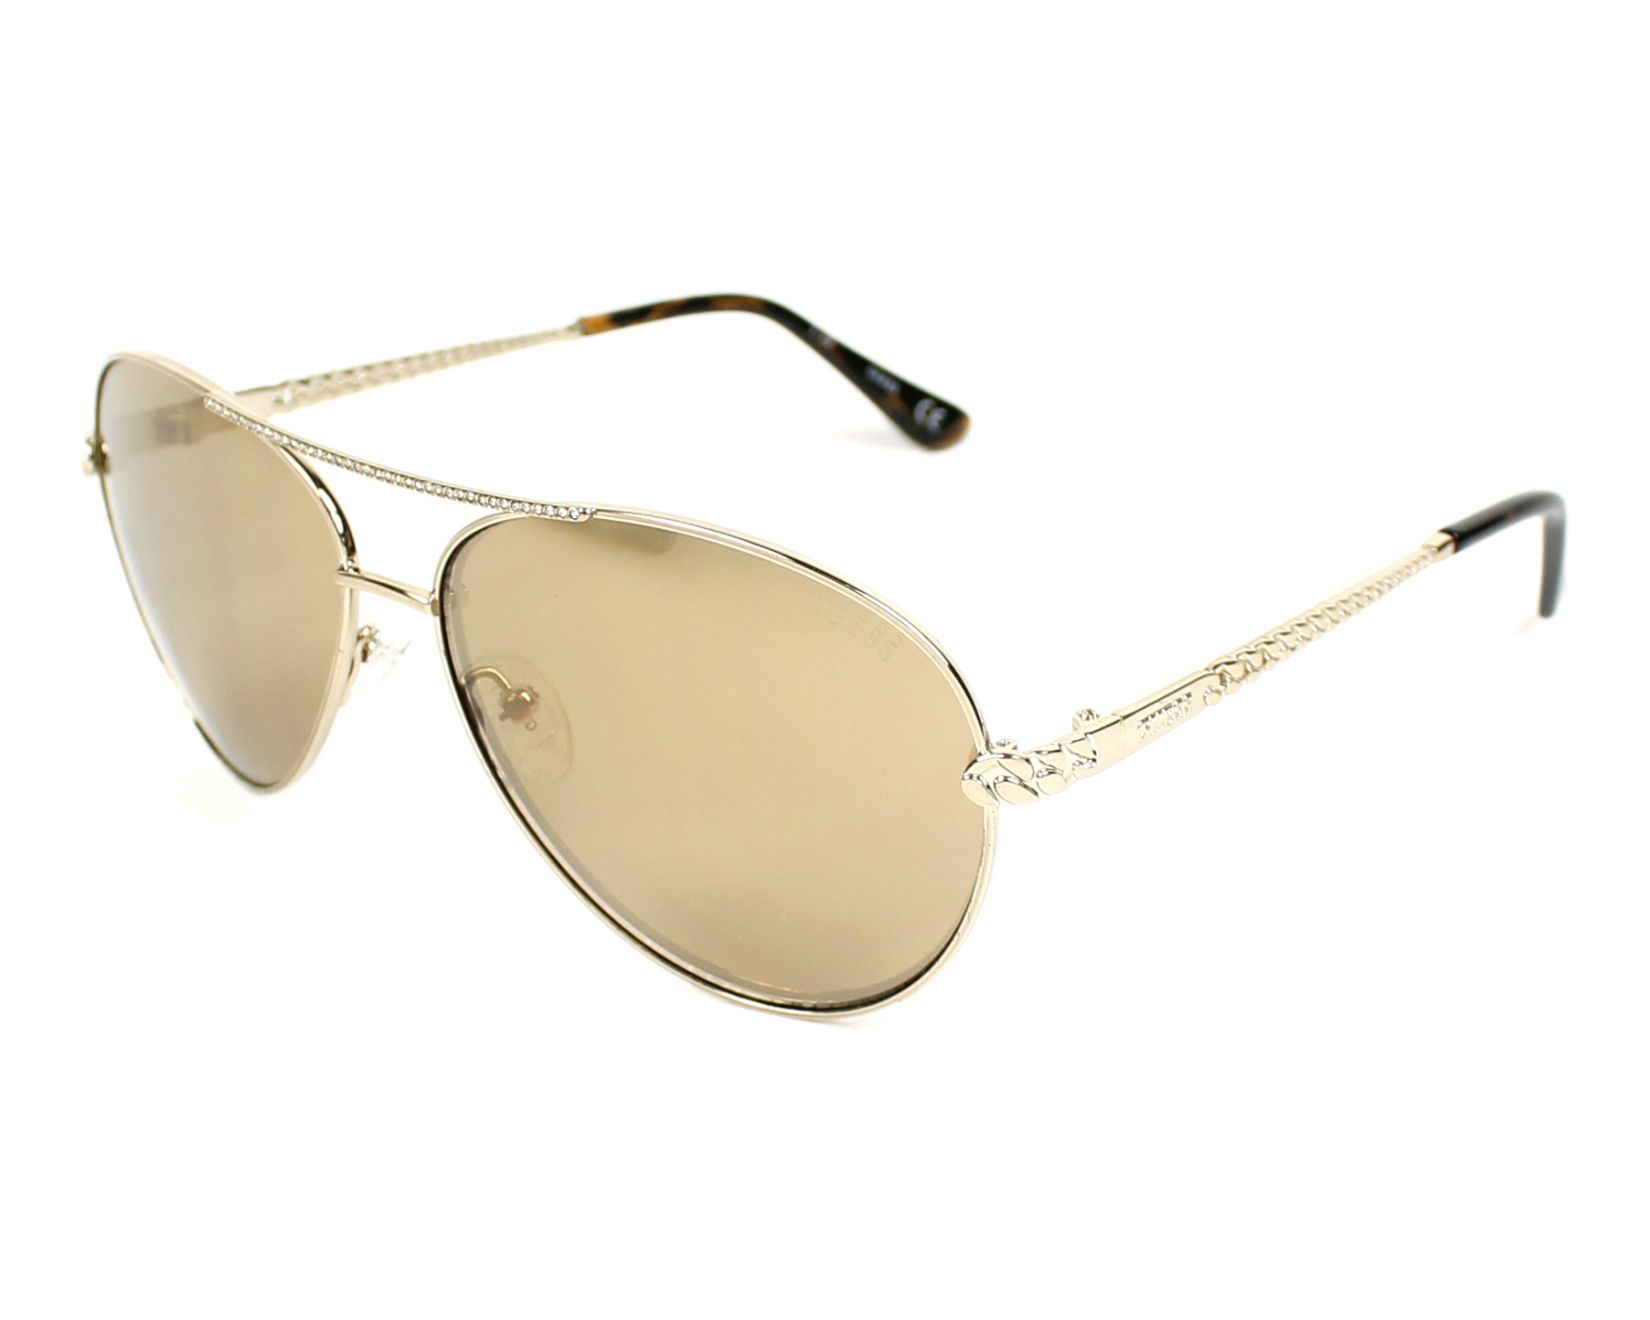 Sunglasses Guess GU-7470-S 32G - Gold 360 degree view 1 044ab1119d8e